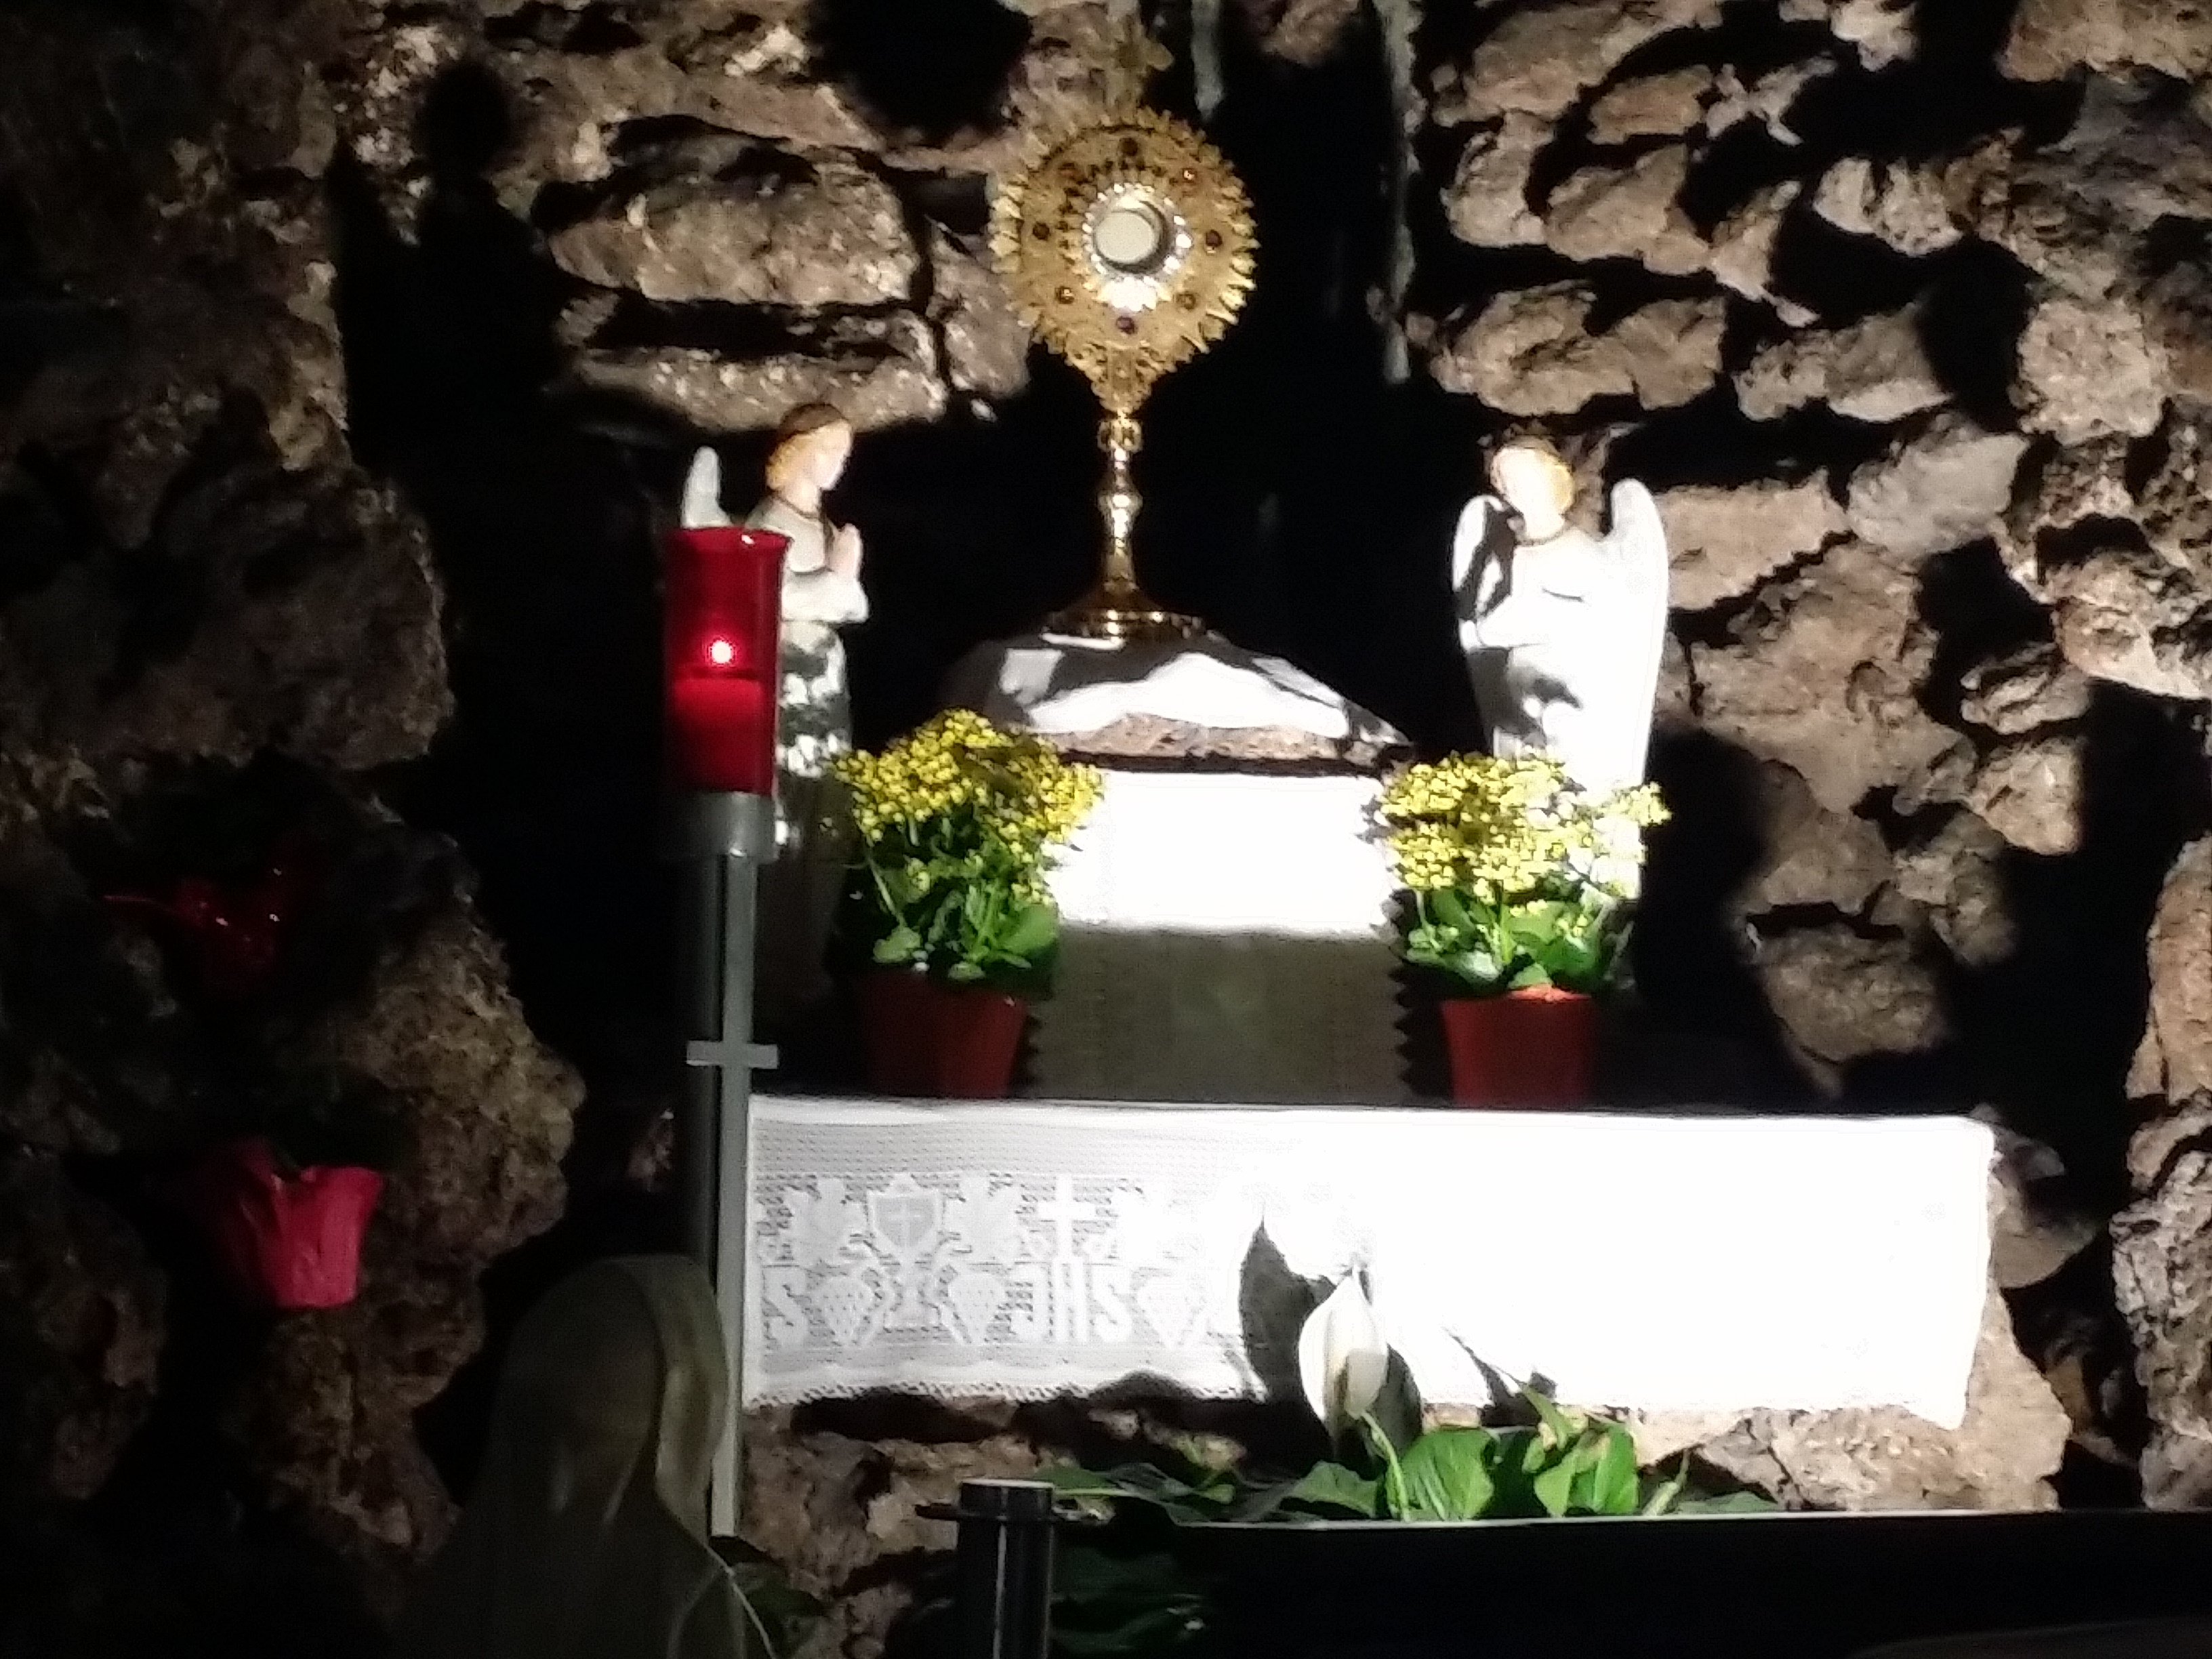 View Full Size Our Lady of Lourdes Grotto Monstrance